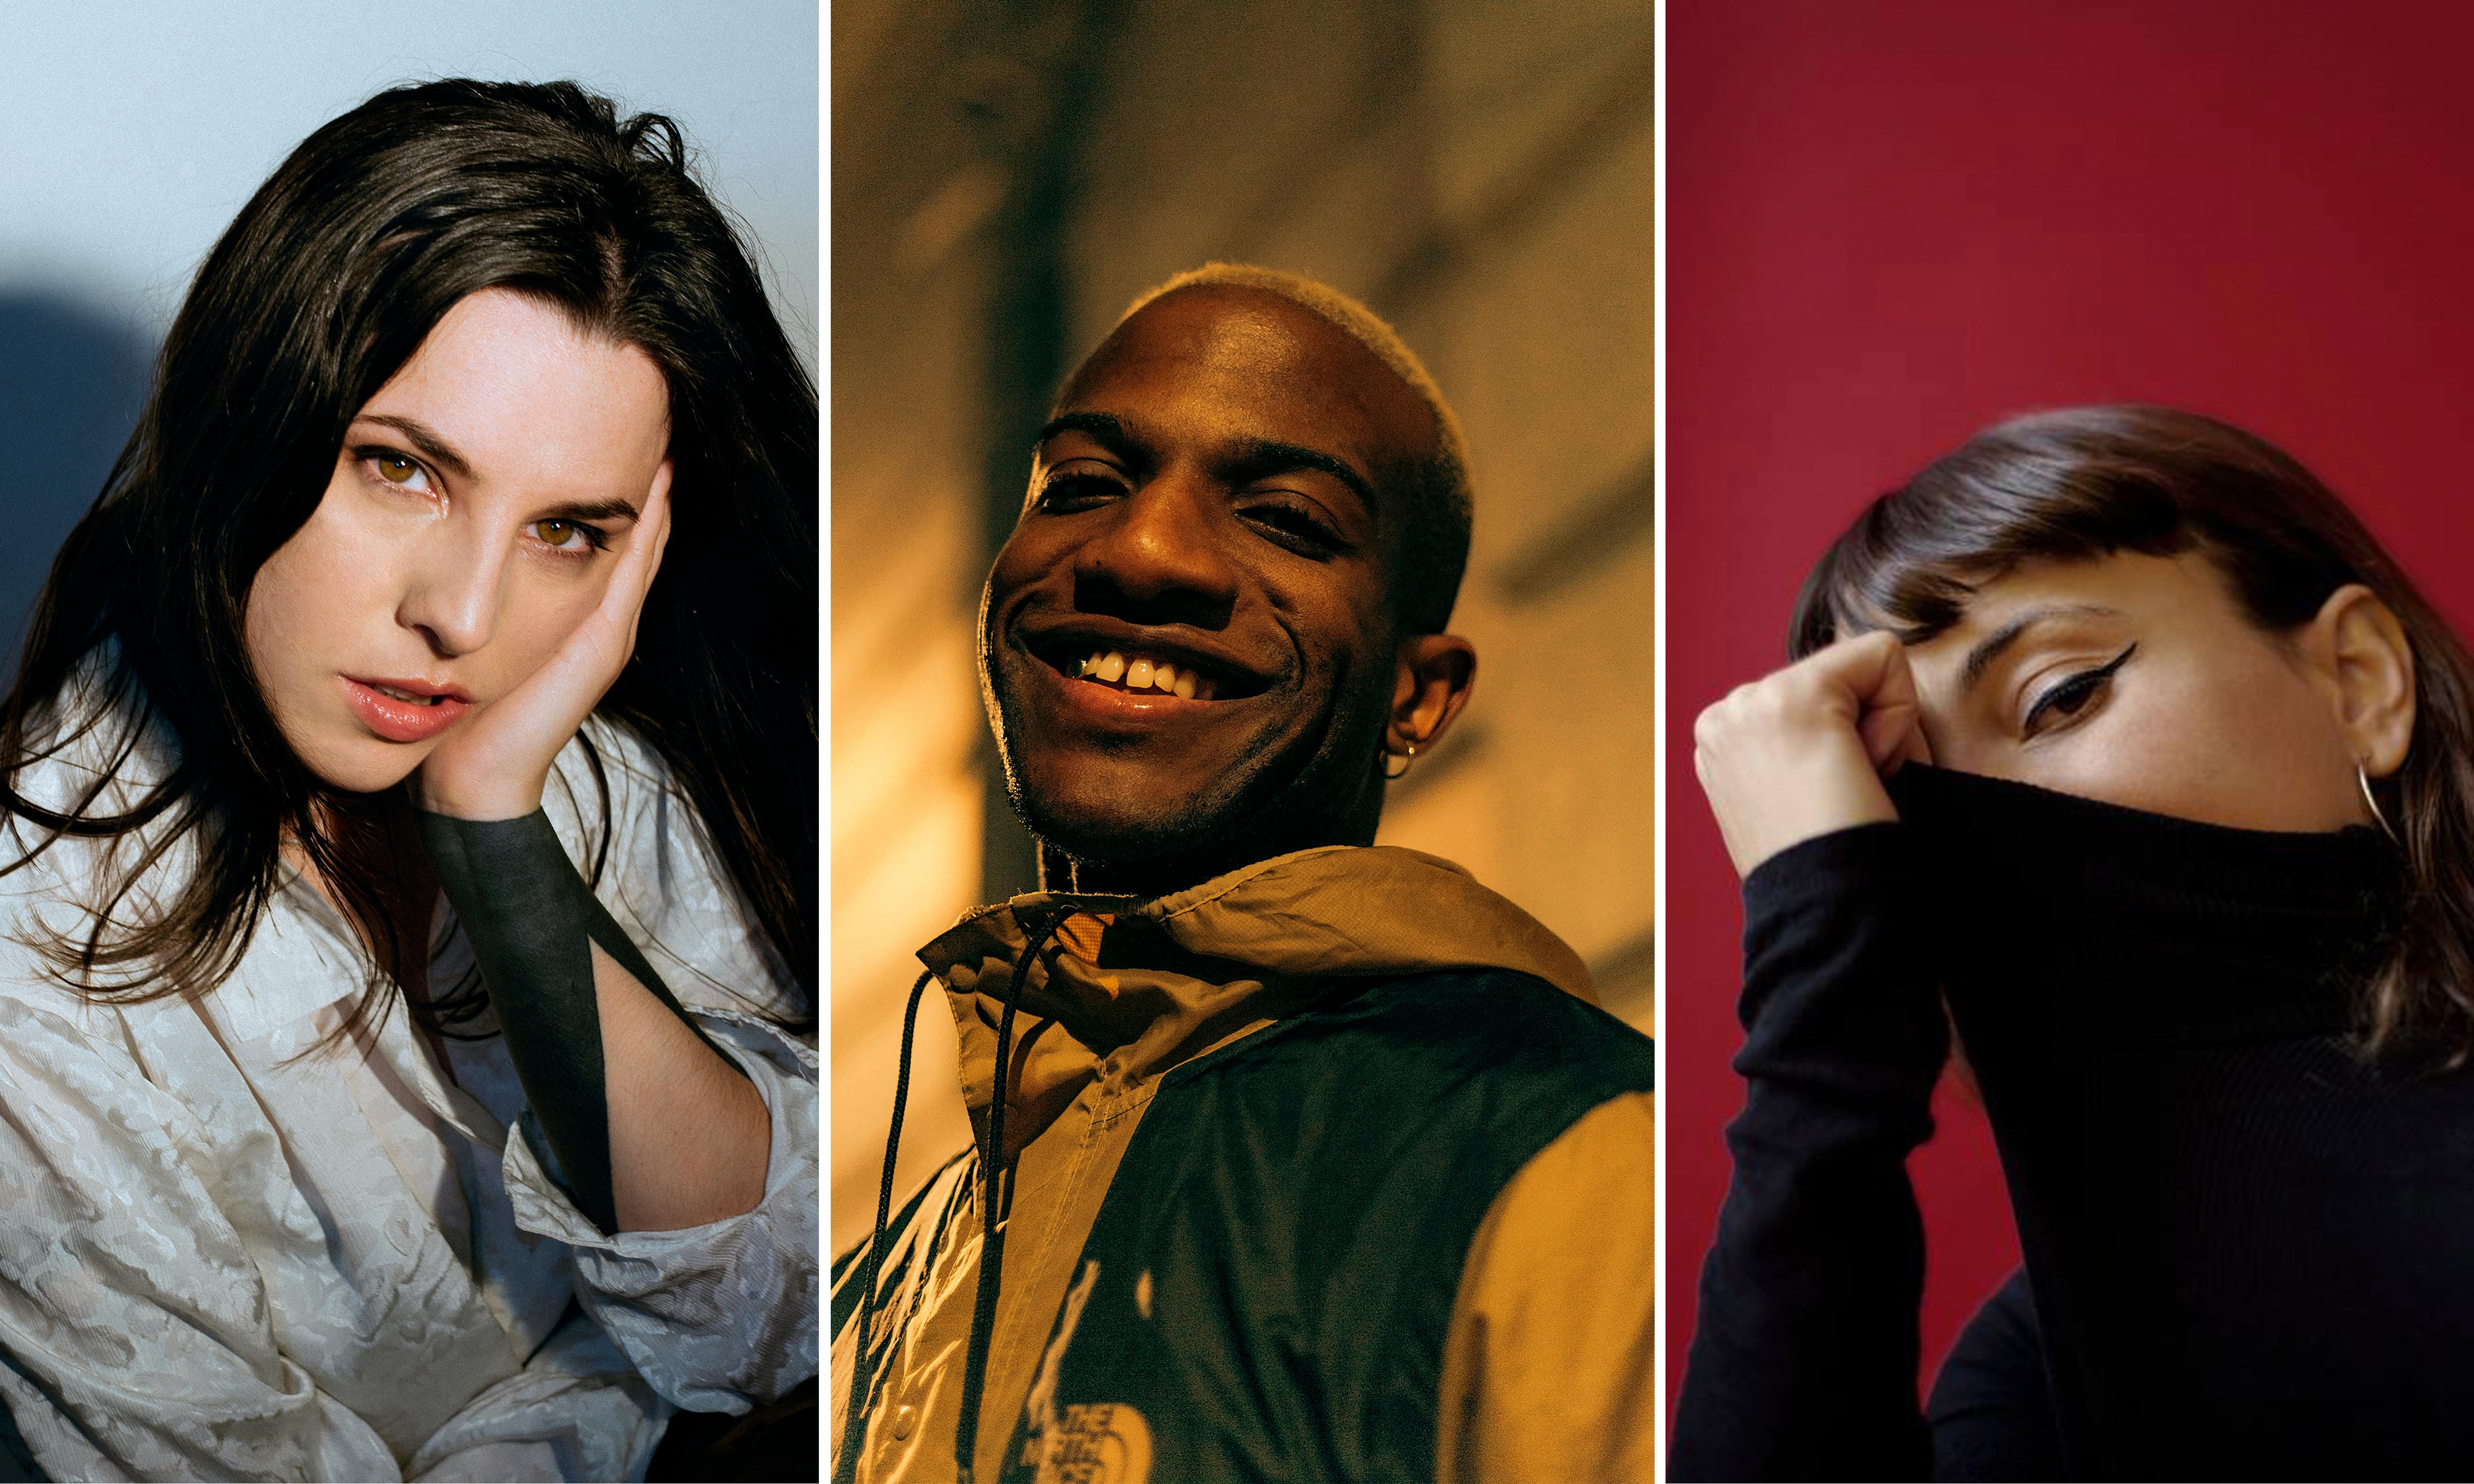 The month's best mixes: psychedelic sounds, soulful UK garage and sinewy EBM